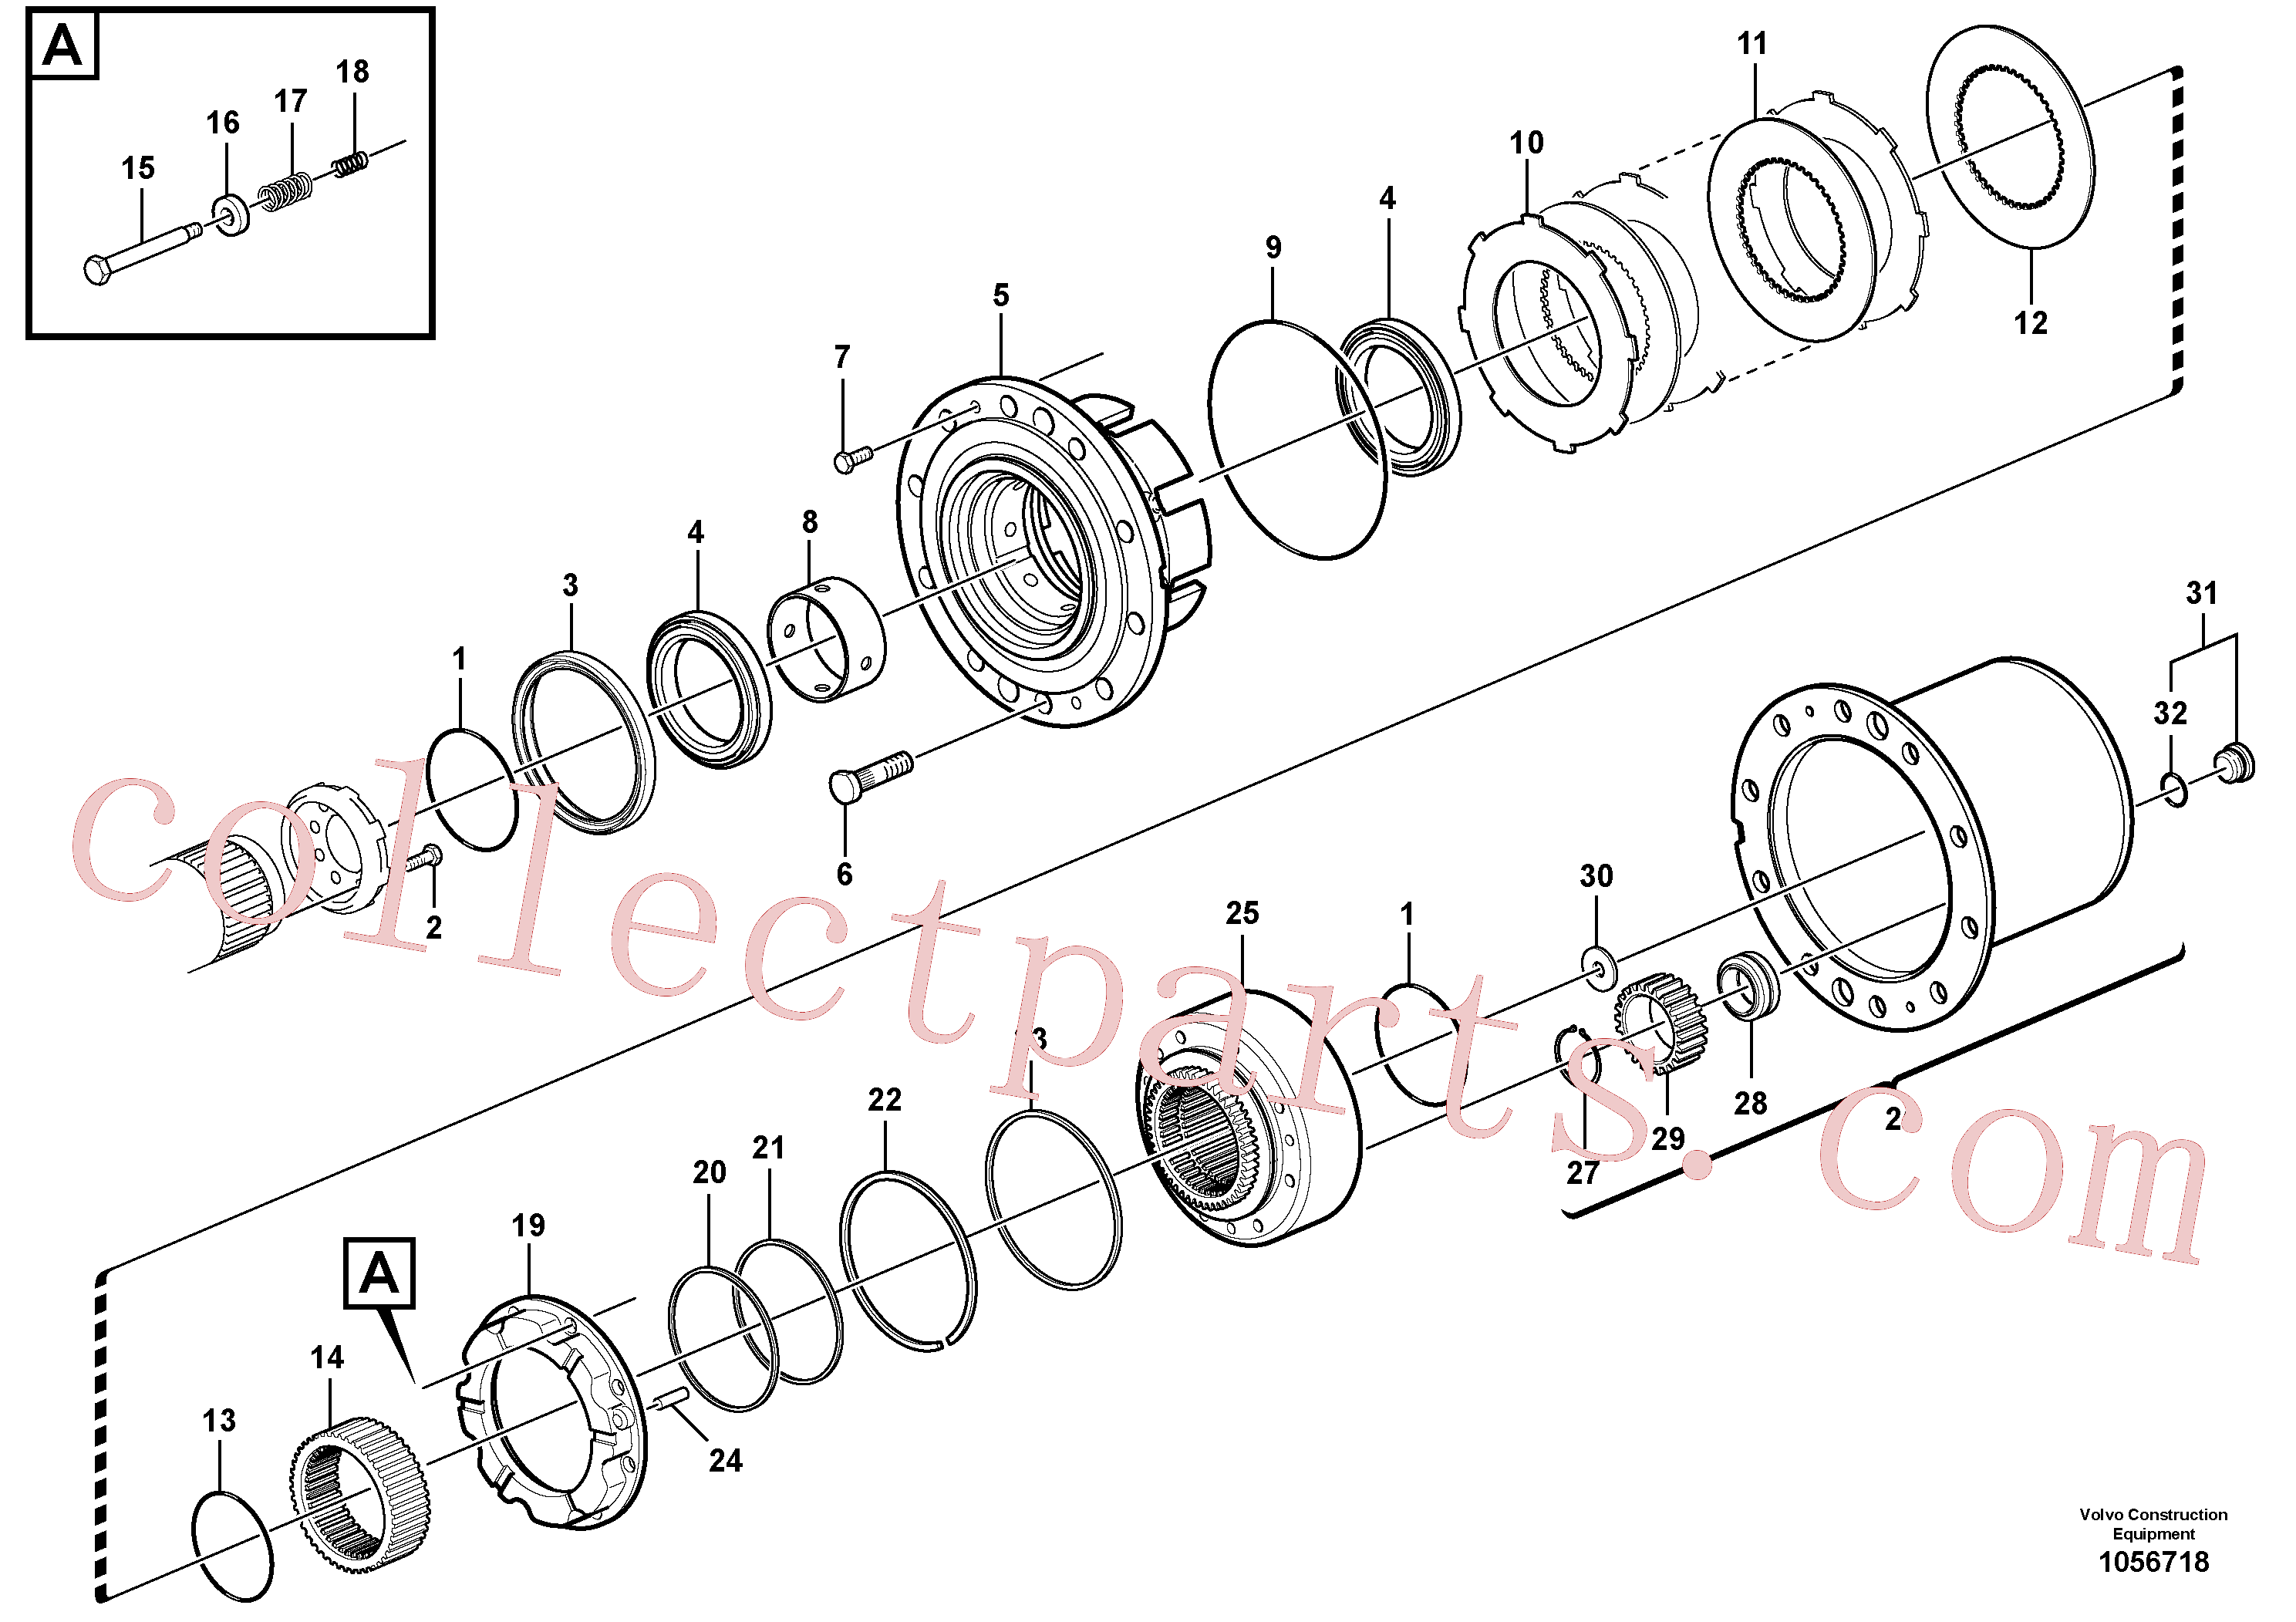 VOE11710791 for Volvo Rear axle, Hub reduction, Front axle, Hub reduction(1056718 assembly)